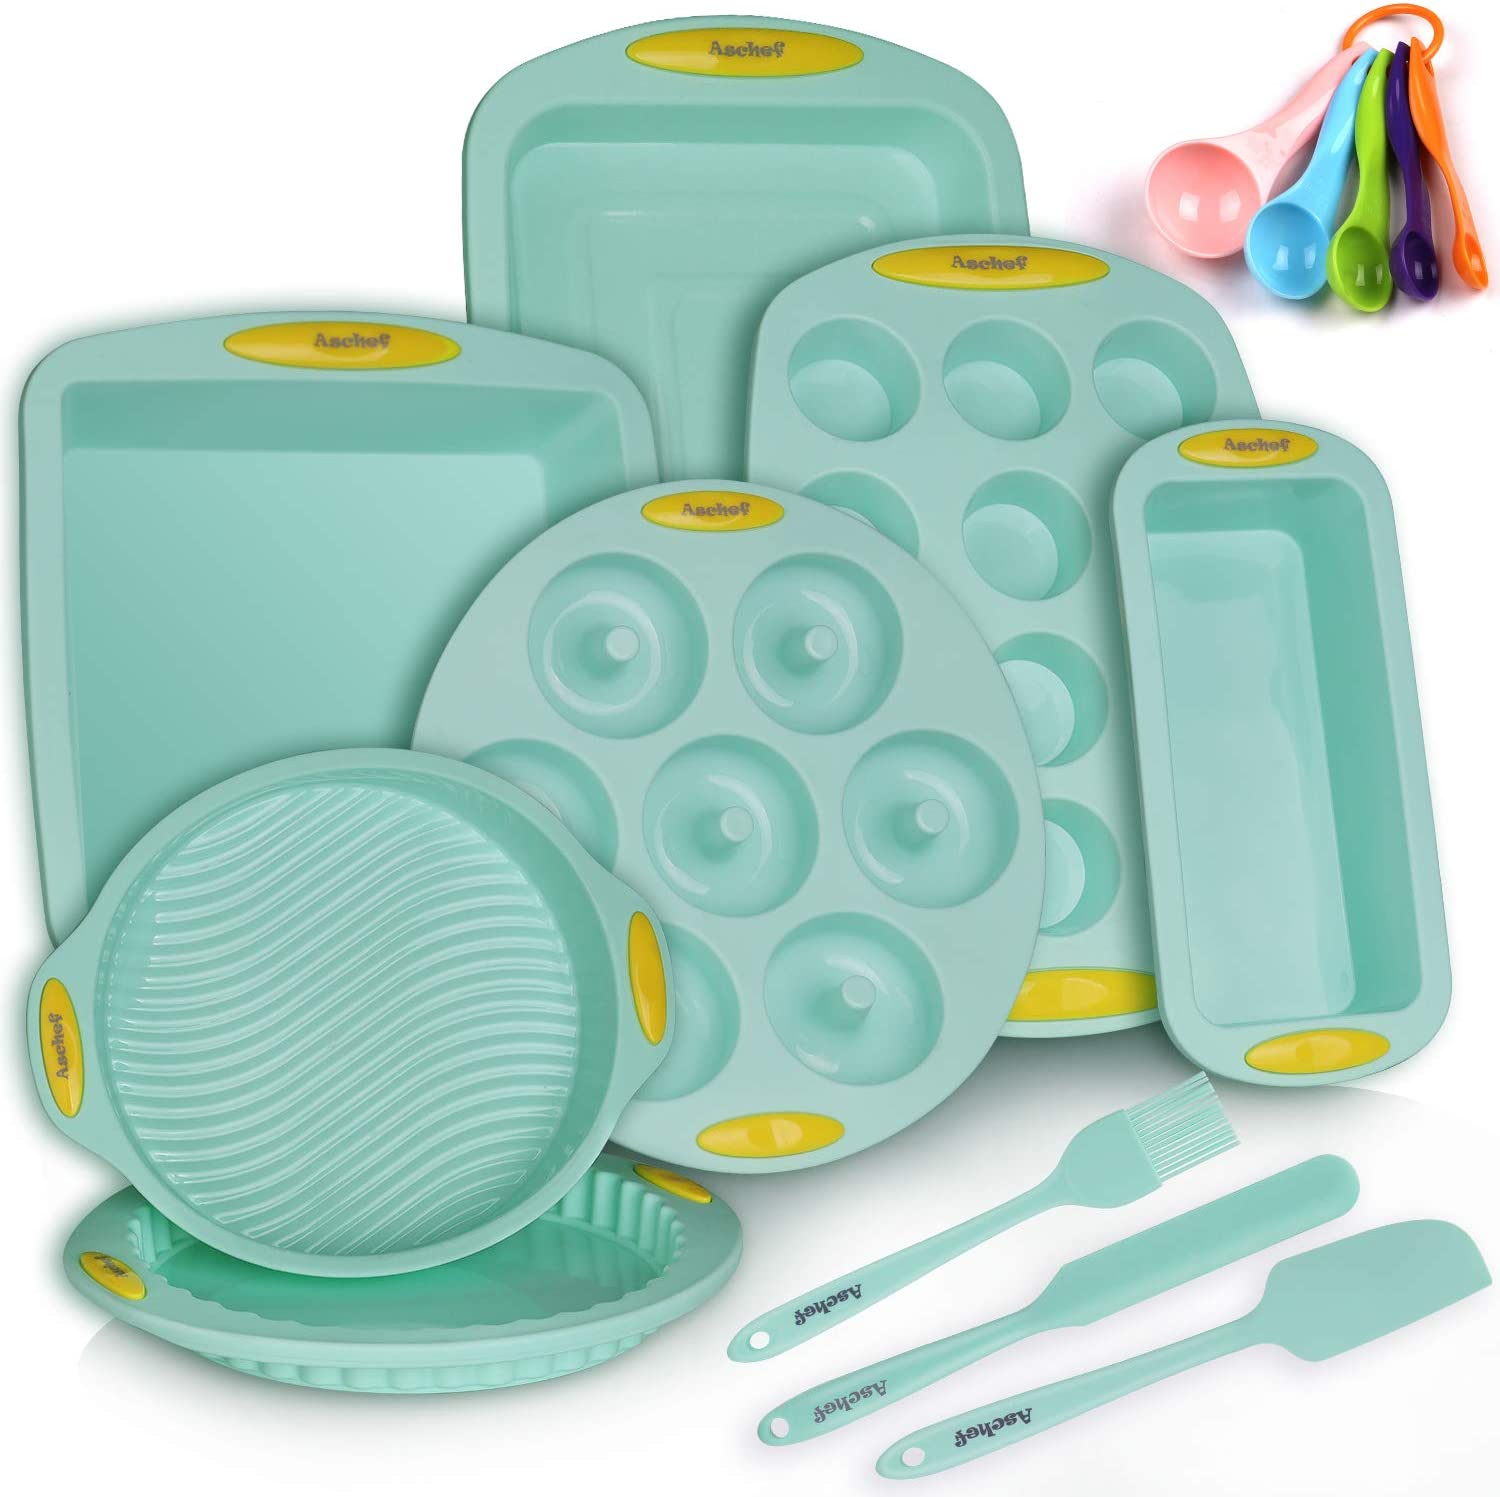 15in1 Silicone Nonstick Baking Pans Mold Tray Supplies Tools Bakeware Set, BPA Free Food Grade for Muffin Donuts Pizza Tiramisu Cake Pan Cookie Sheets Cookware Set with Yellow Hanlde Grip for Oven: Kitchen & Dining